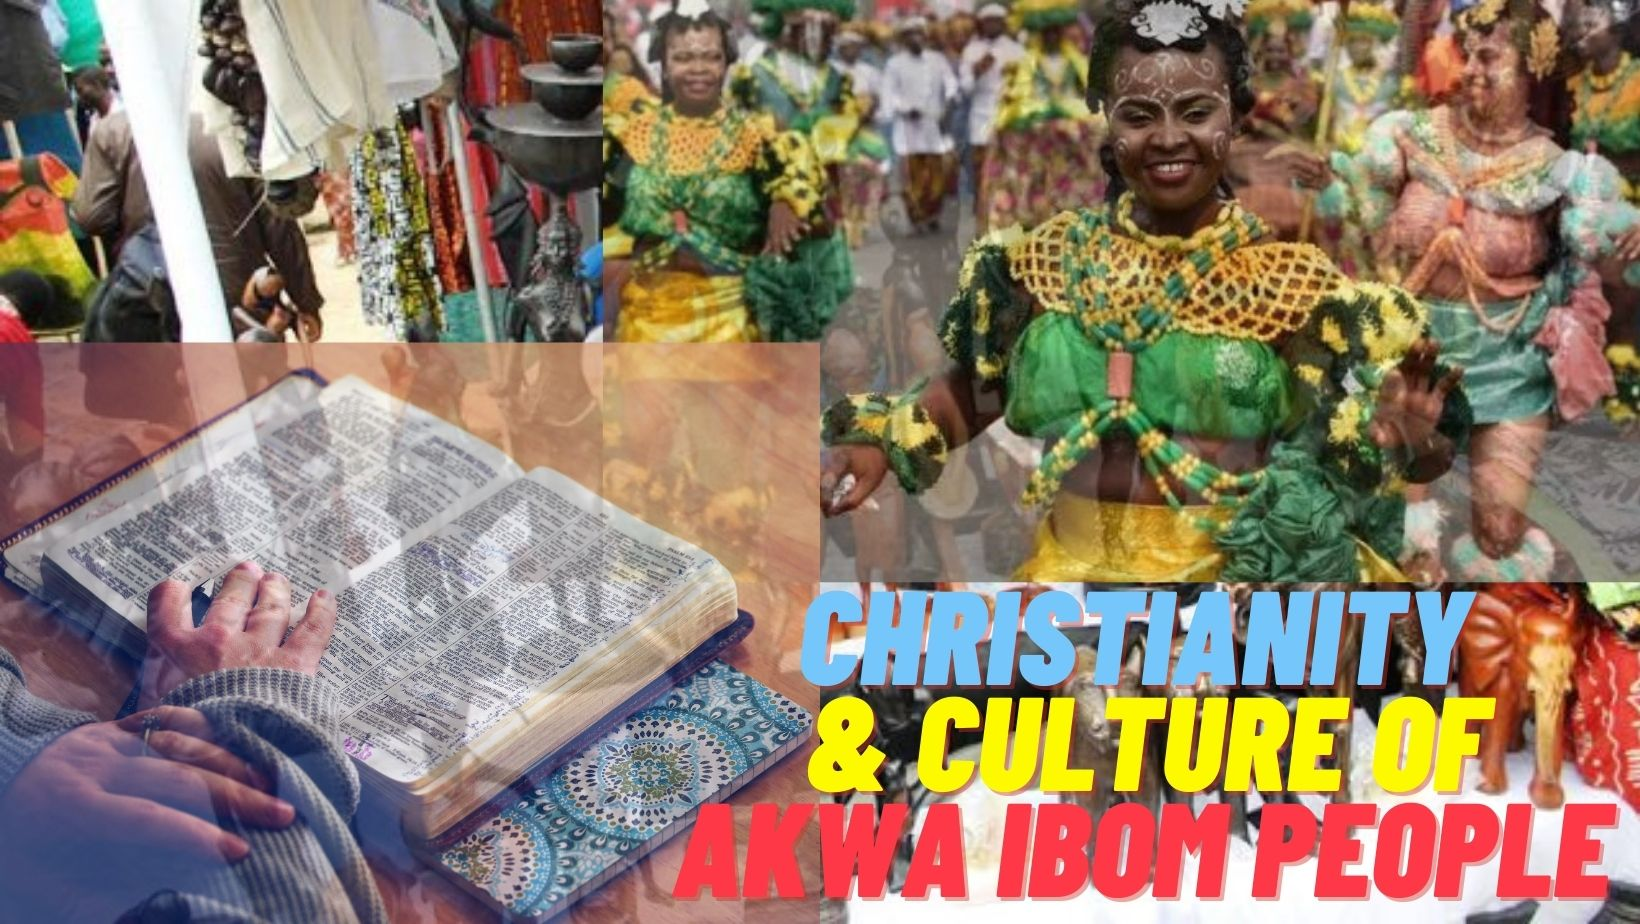 Christianity and culture of akwa ibom people